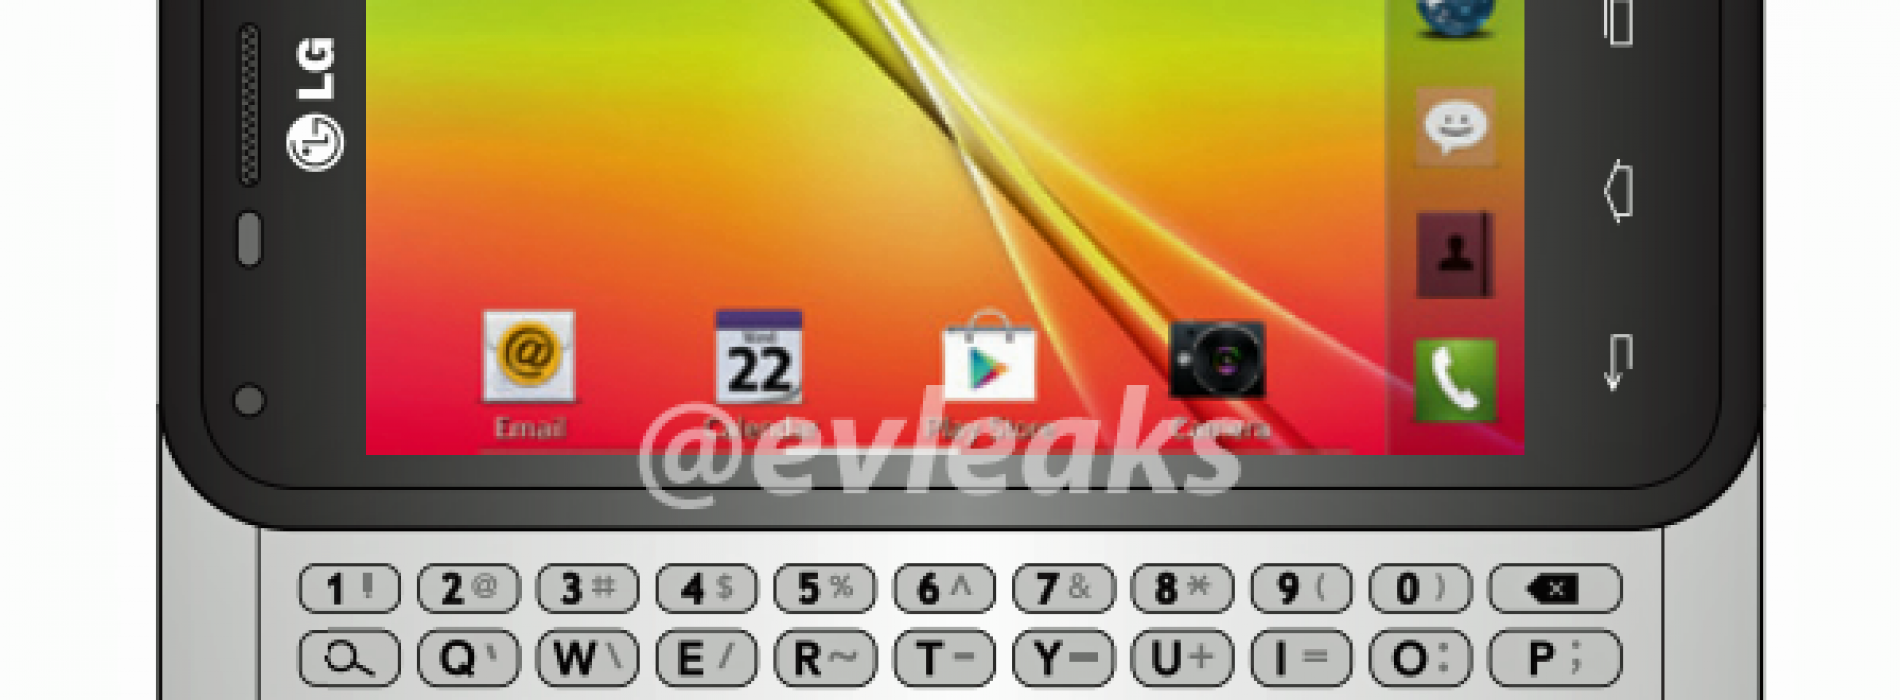 T-Mobile's LG Optimus F3Q leaks with 5-row QWERTY